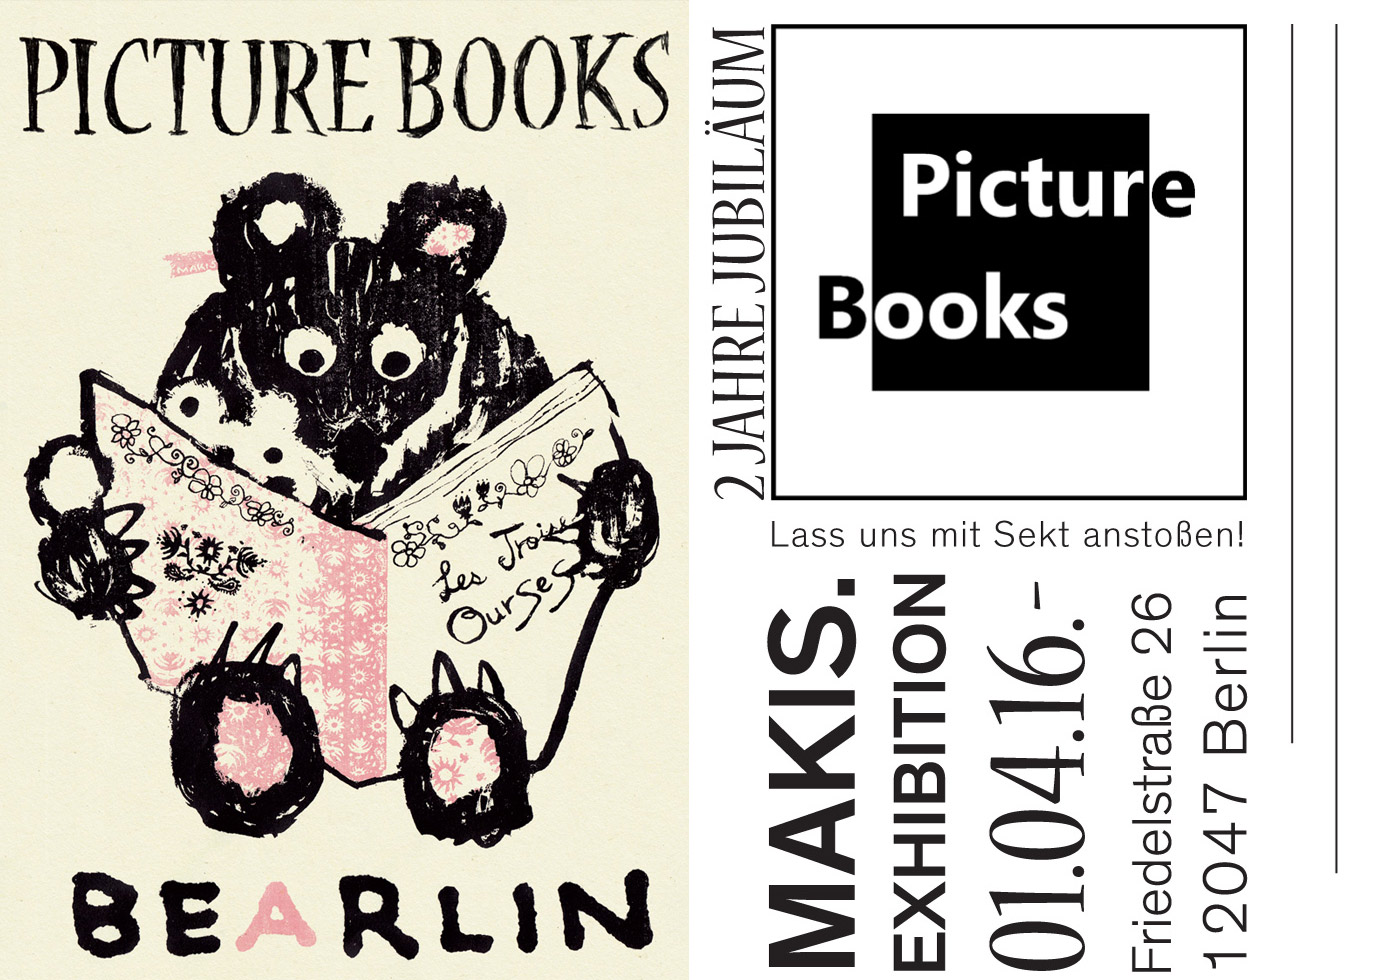 picturebooks_bearlin